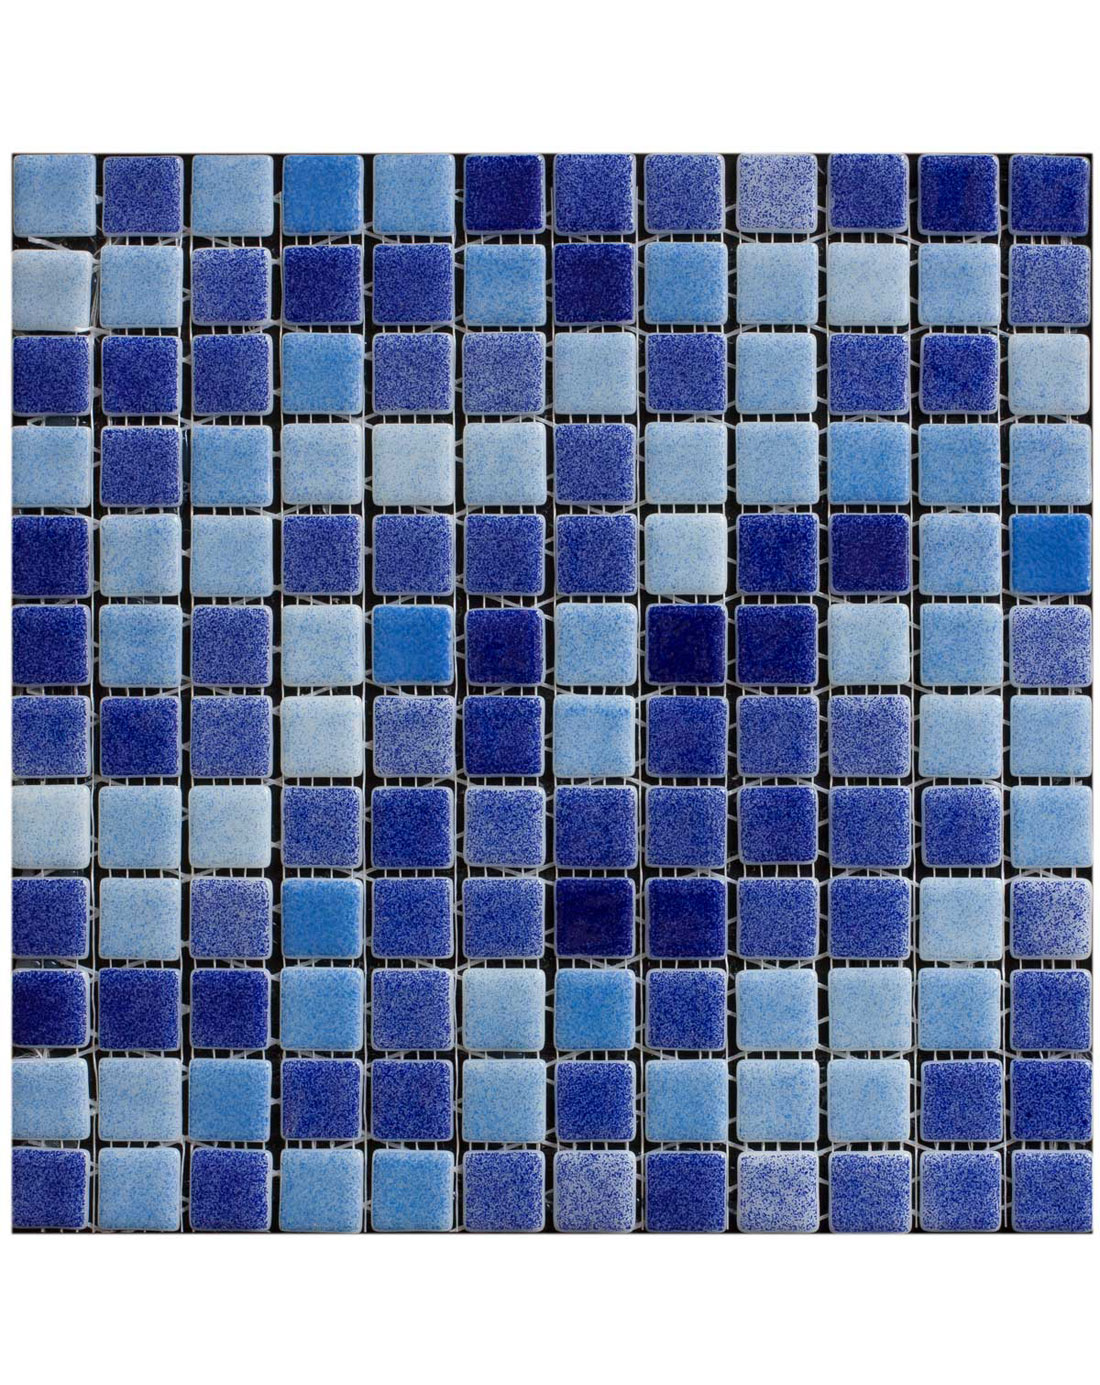 Blue Pool Mix Mosaic Wall Tiles - Bathroom Tiles Direct